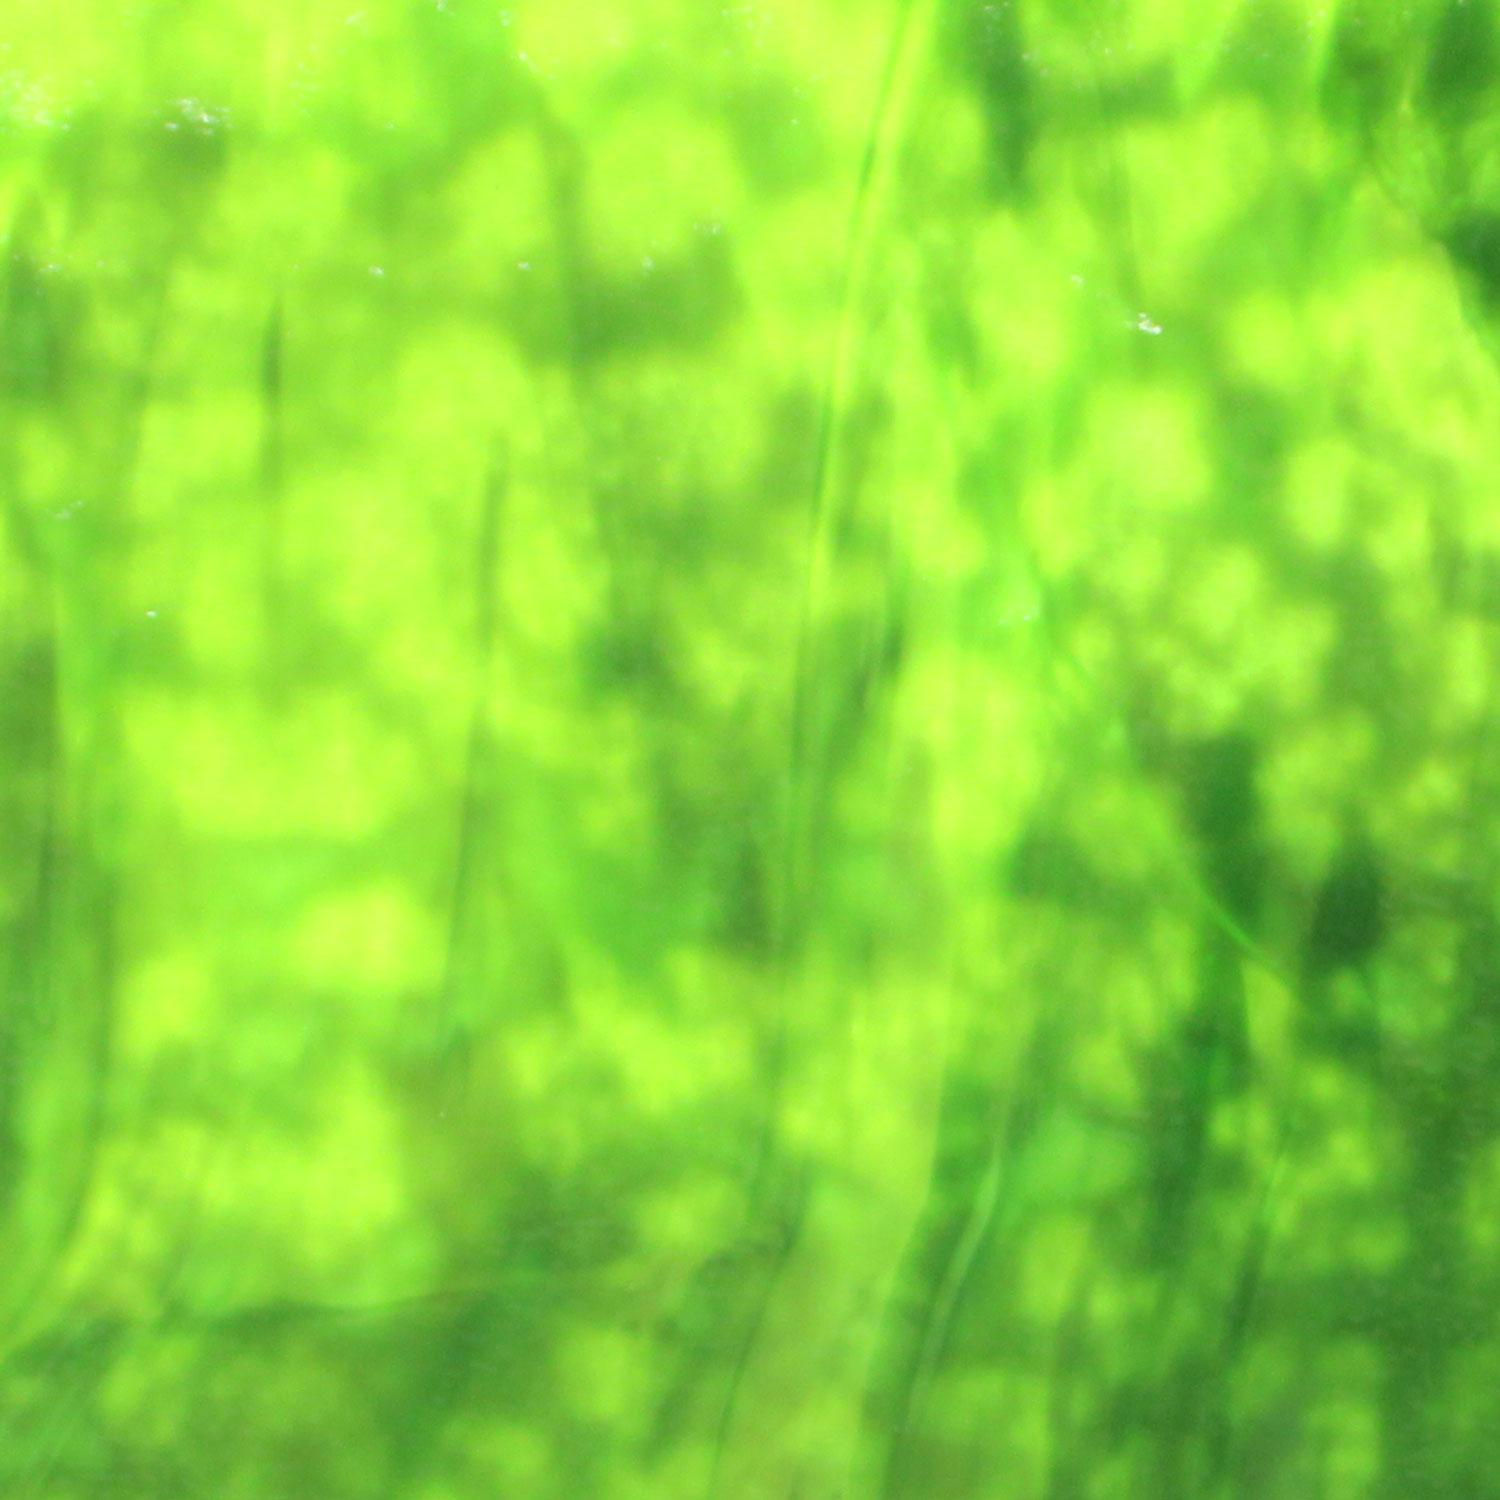 Youghiogheny Emerald Green and Lime Green Reproduction